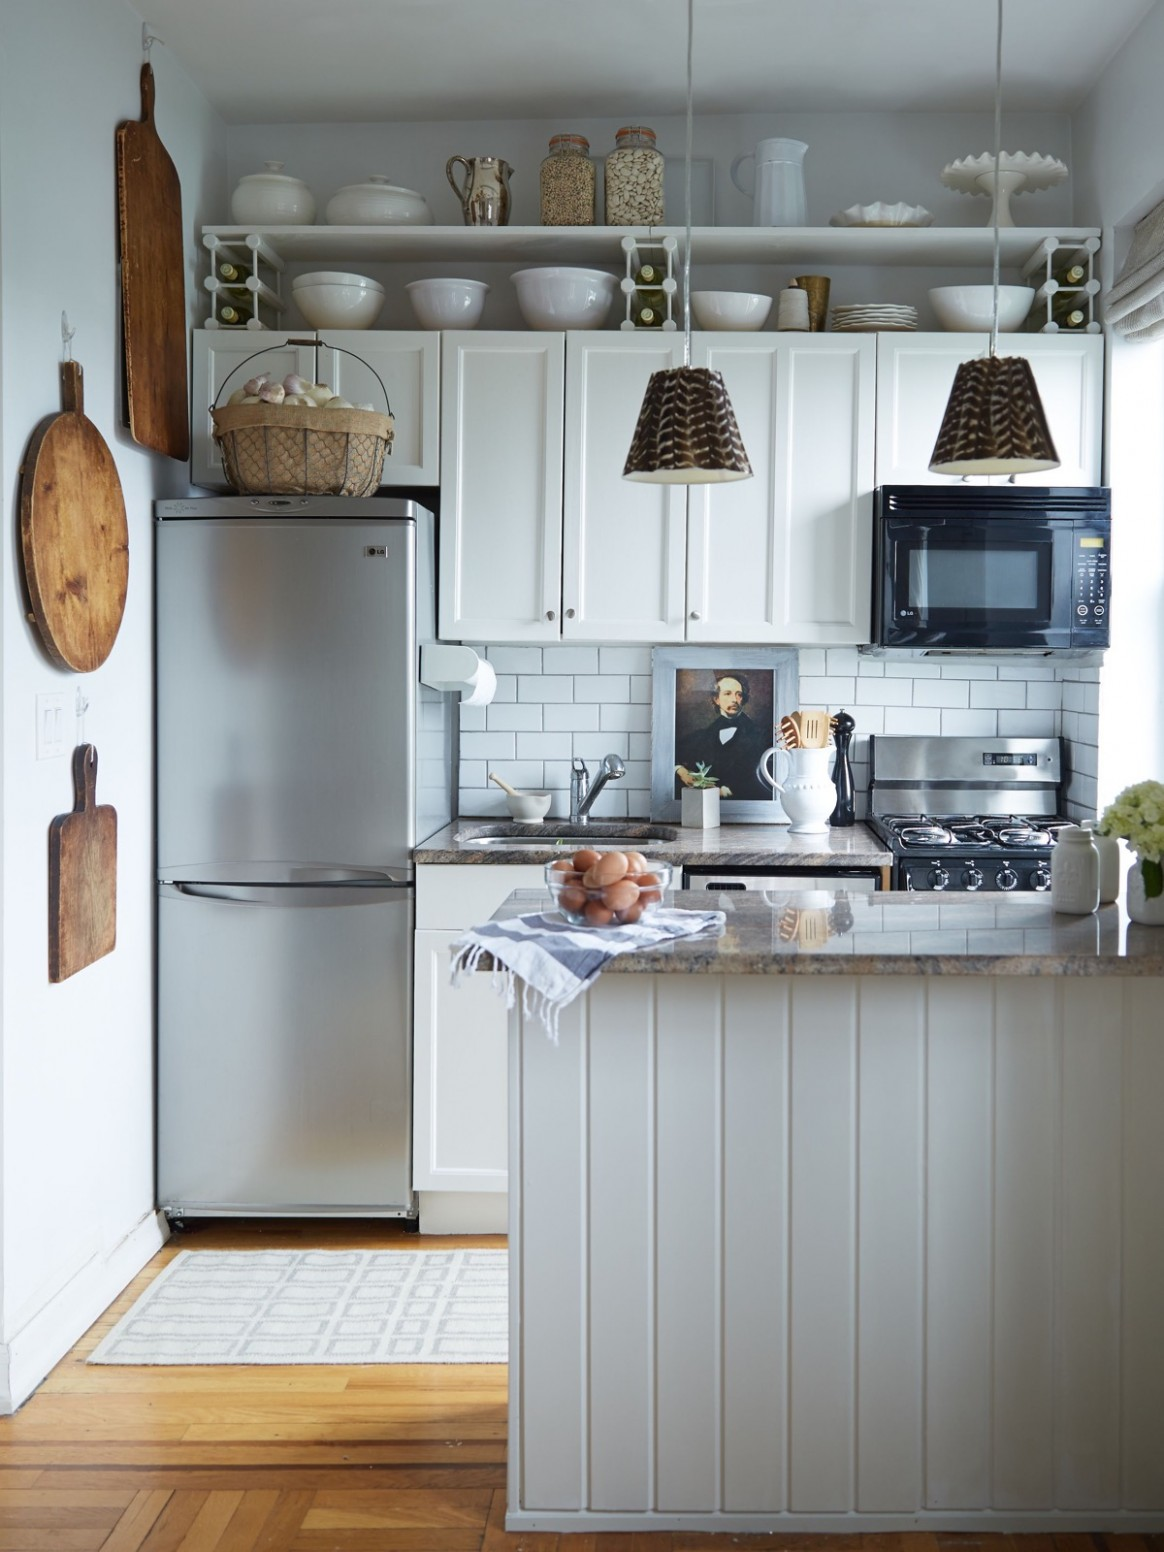 11 Splendid Small Kitchens And Ideas You Can Use From Them - Kitchen Ideas For Apartments